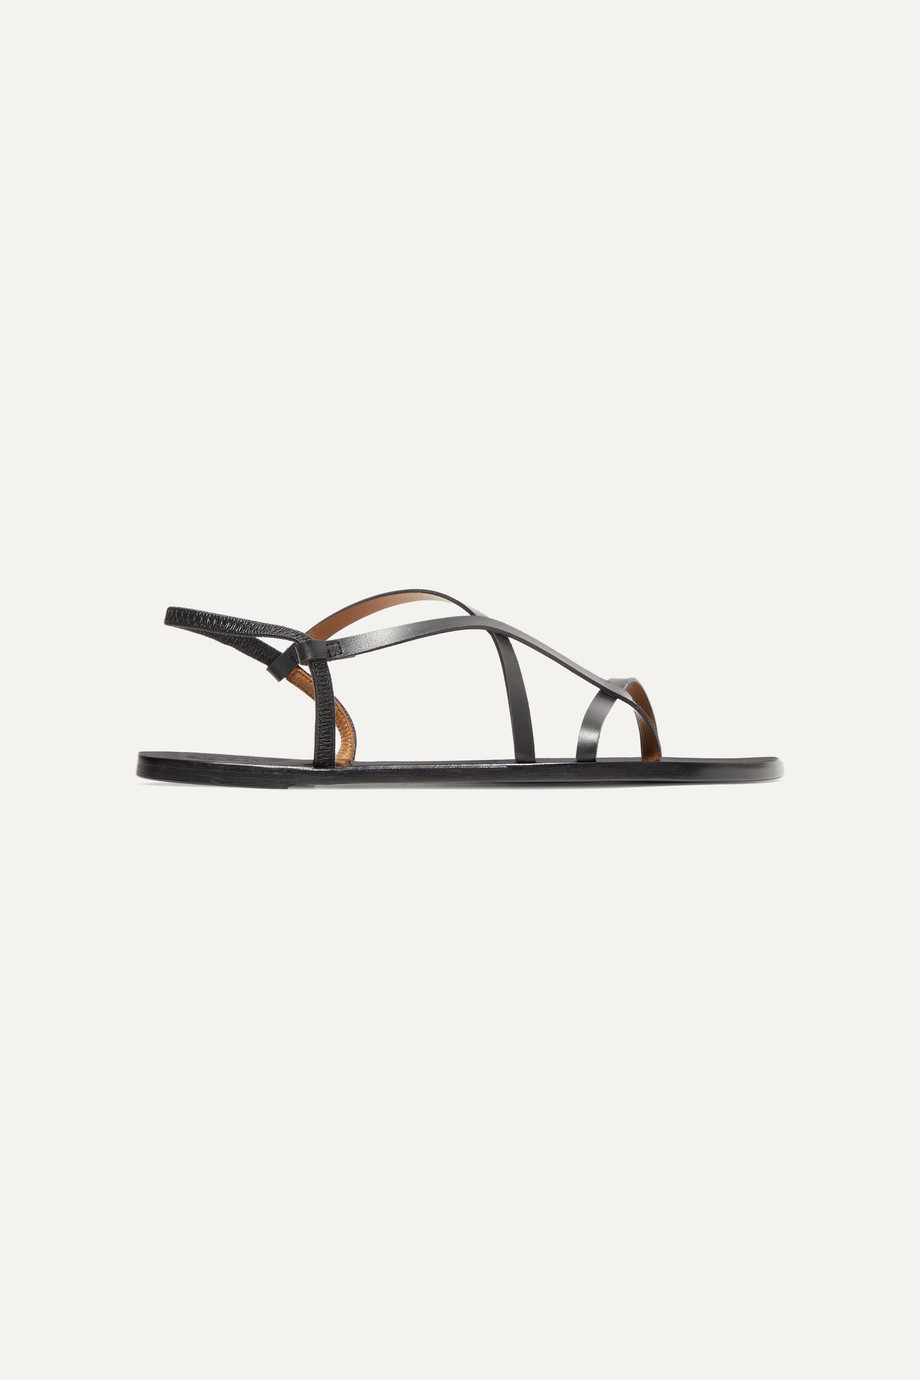 ATP Atelier Lizza leather slingback sandals